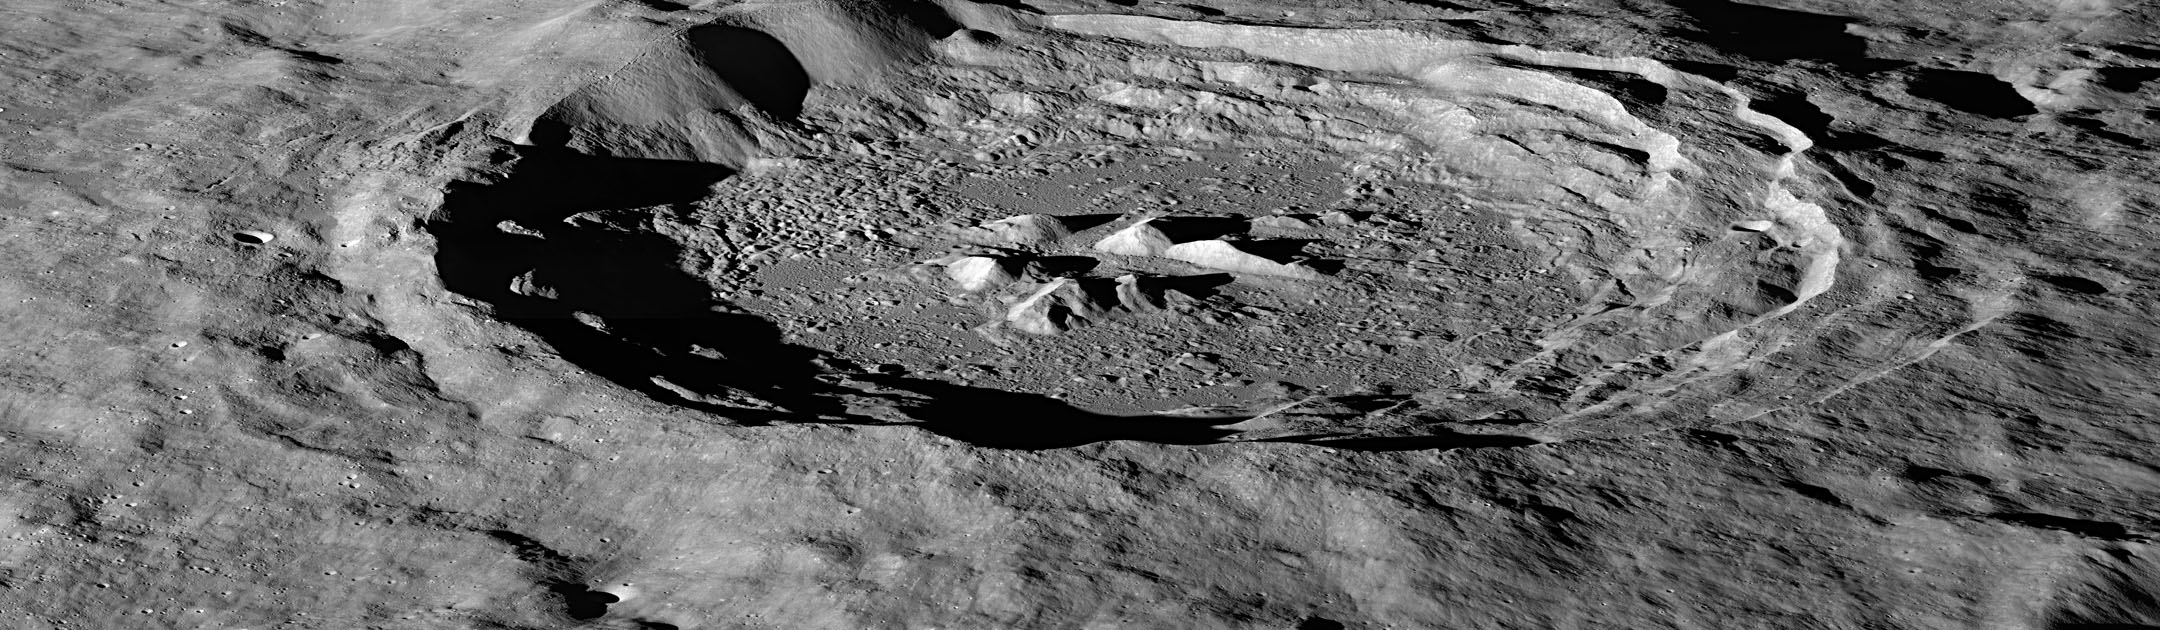 LRO image of the moon's Hayn Crater, located just northeast of Mare Humboldtianum, dramatically illuminated by the low Sun casting long shadows across the crater floor.